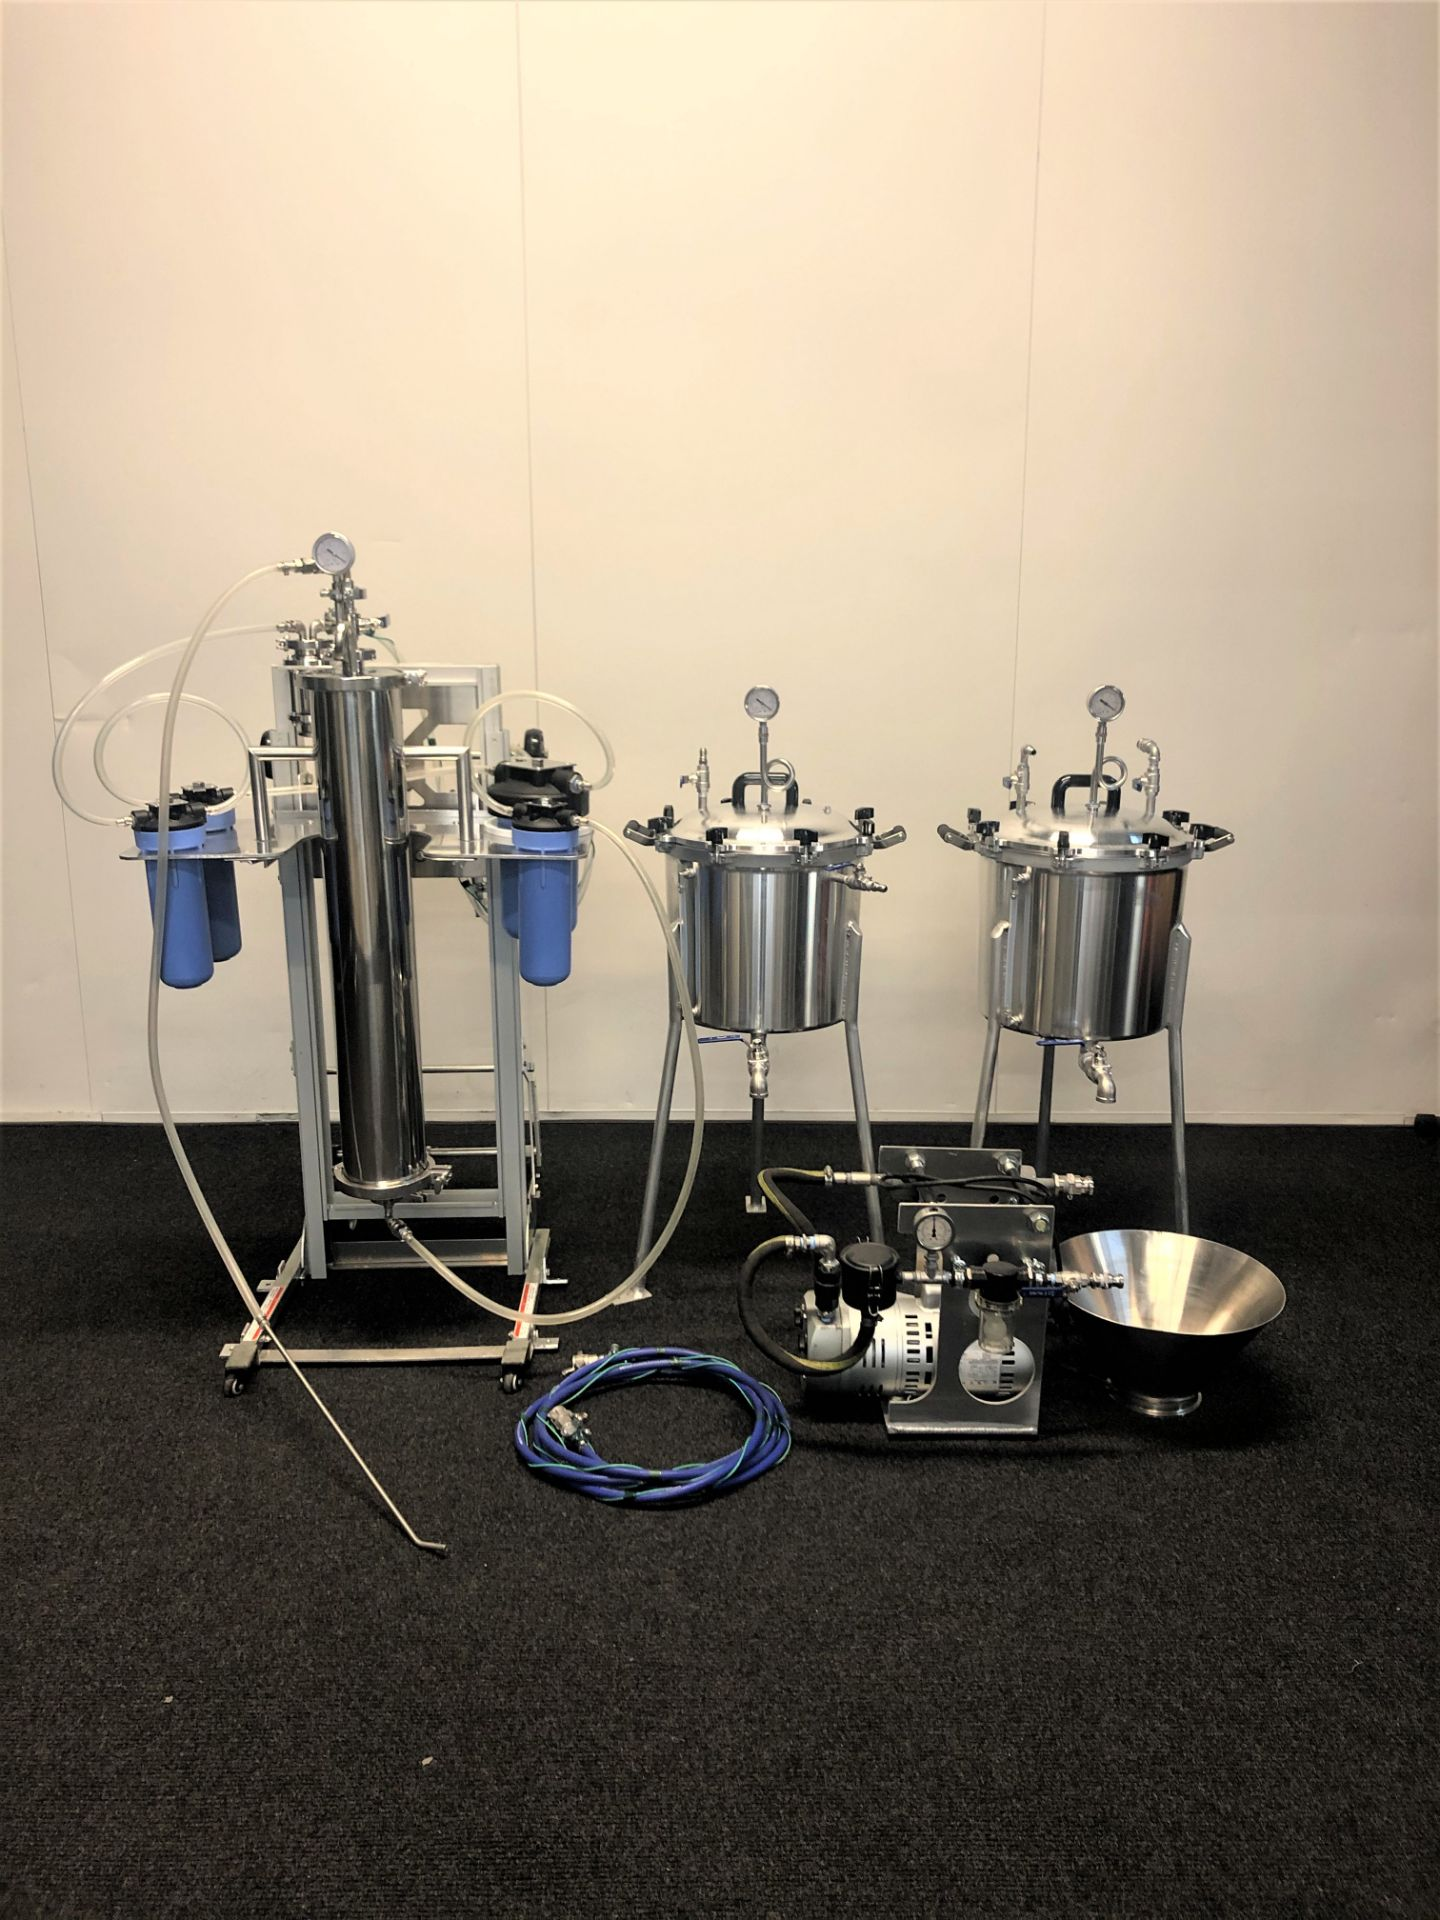 Used-CRCfilters Ethanol Extraction/Purification System. Model EP-05 w/ 20 Gal Collection Vessel - Image 2 of 6